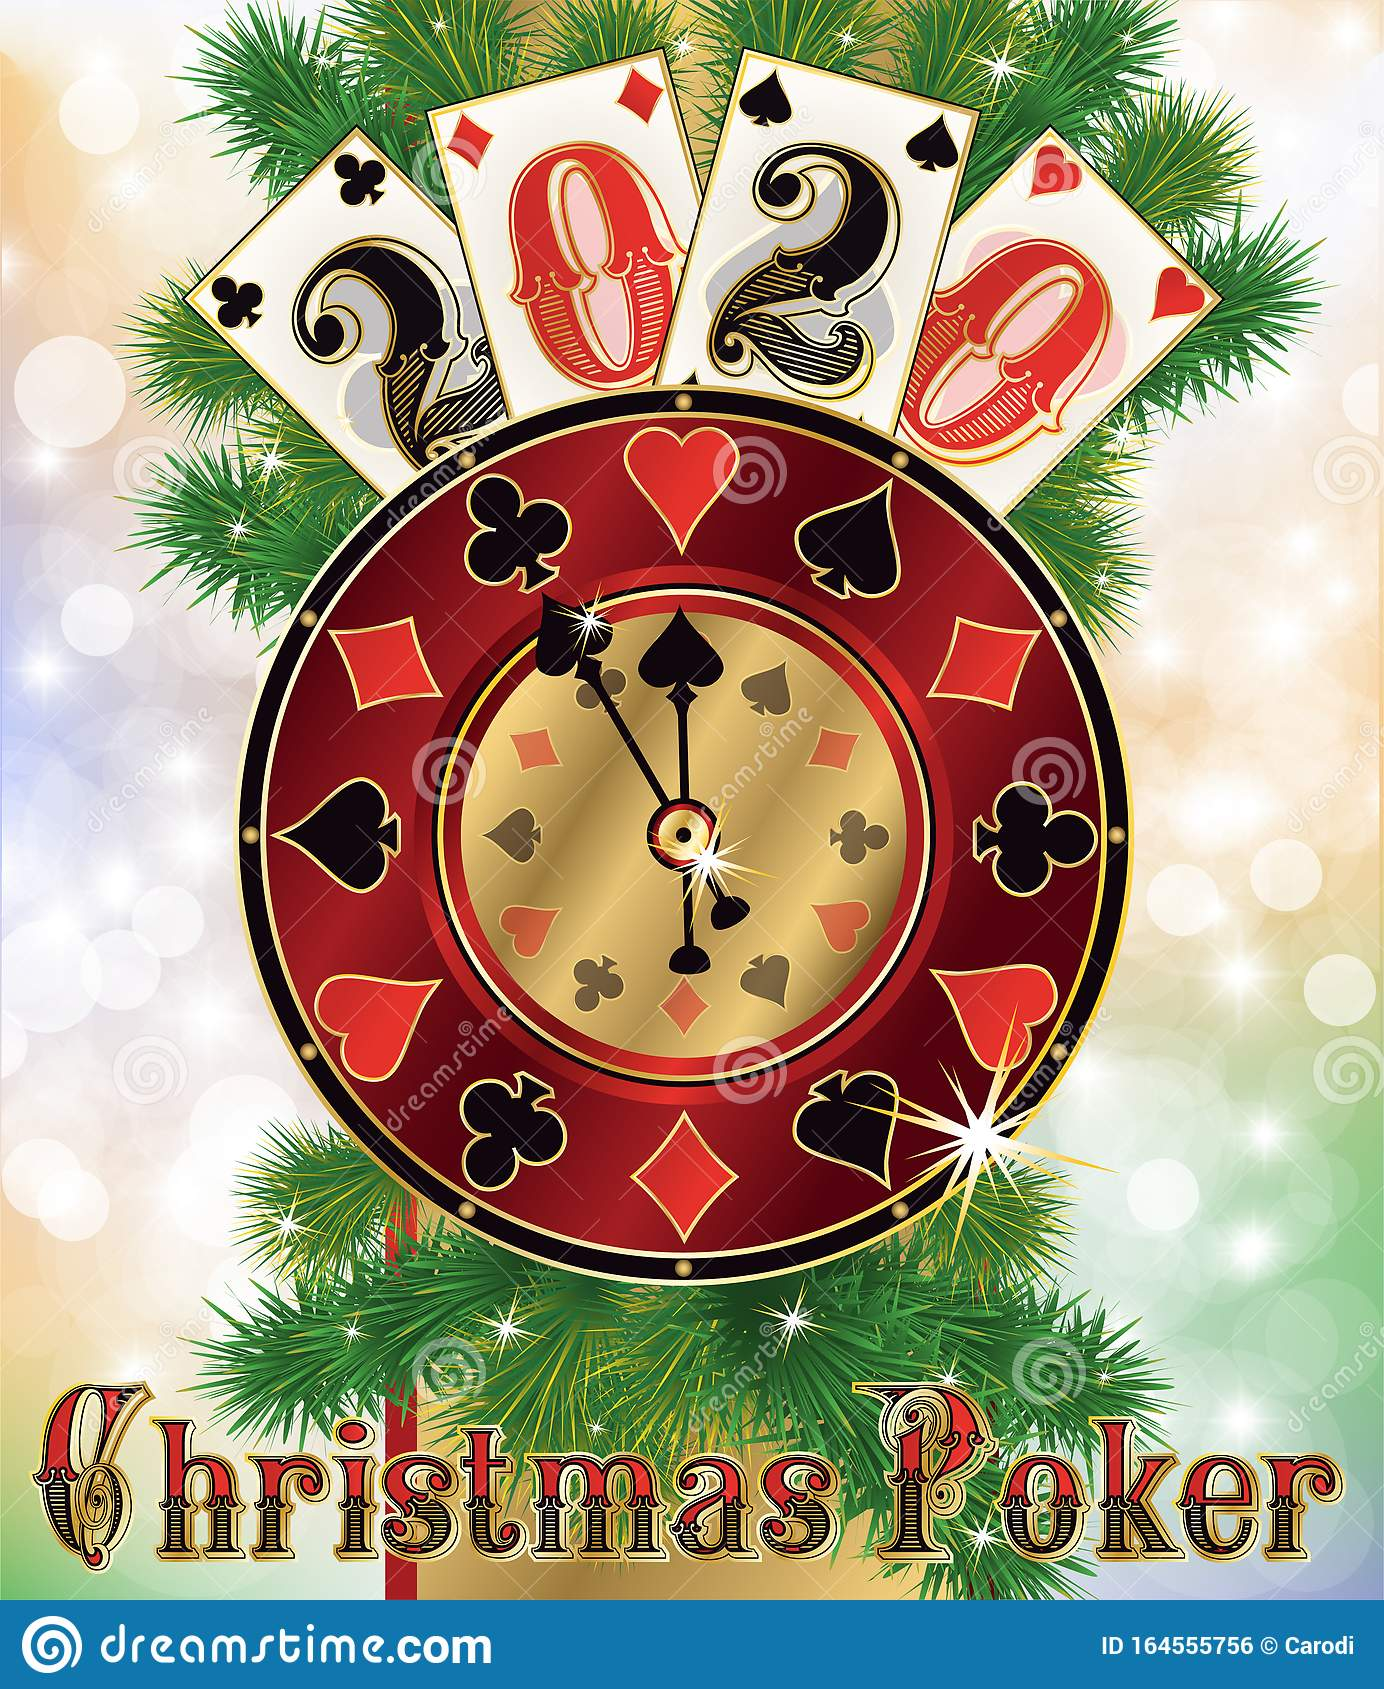 Casino christmas free money the best 2 player games